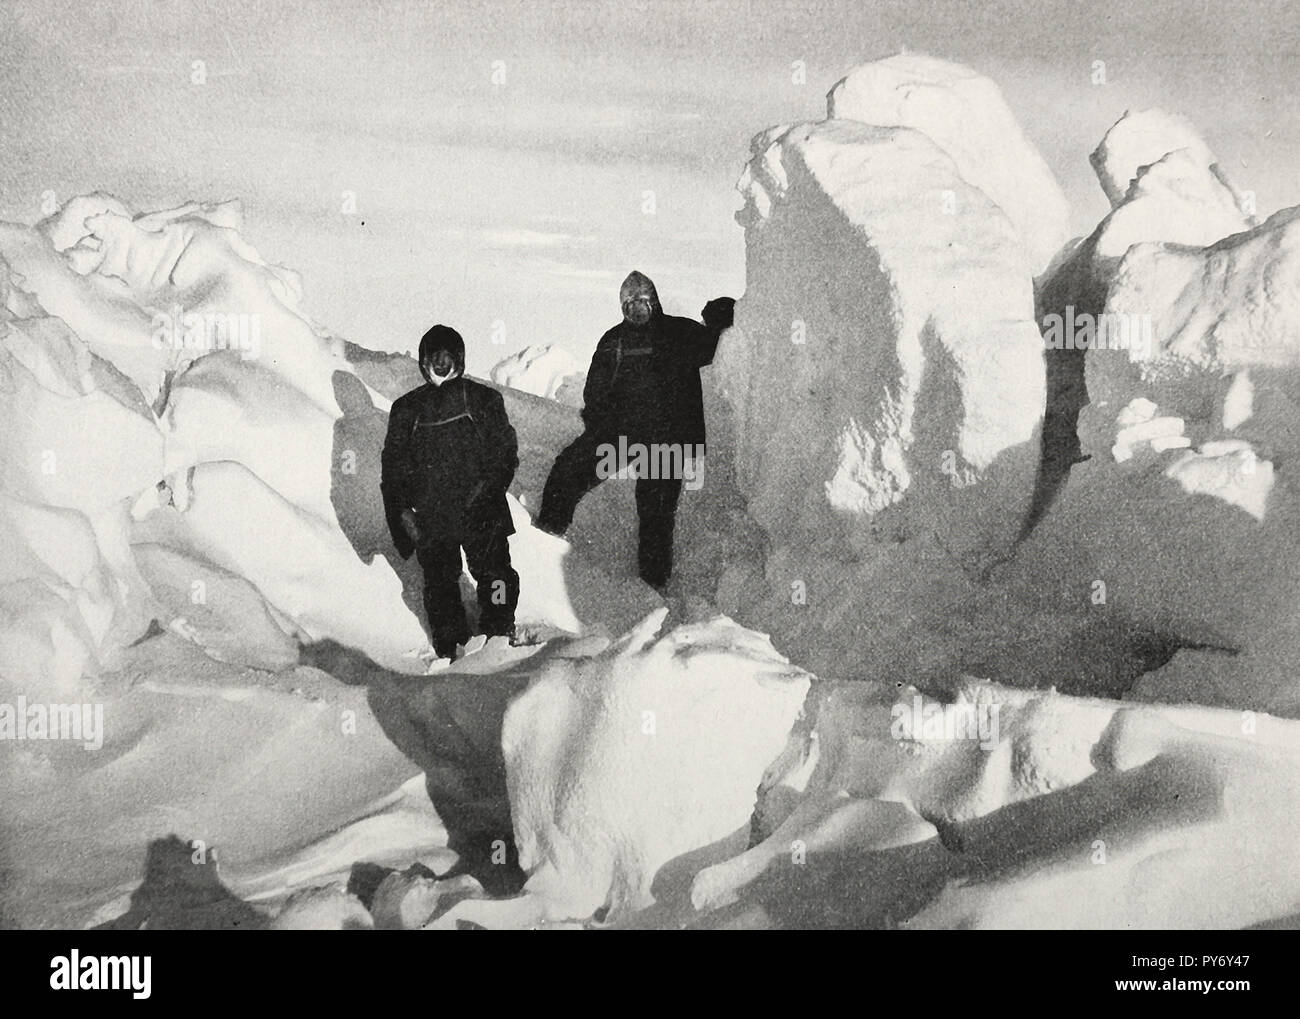 Sir Ernest Shackleton and Frank Wild scouting for a path to the land through the hummocks - Stock Image